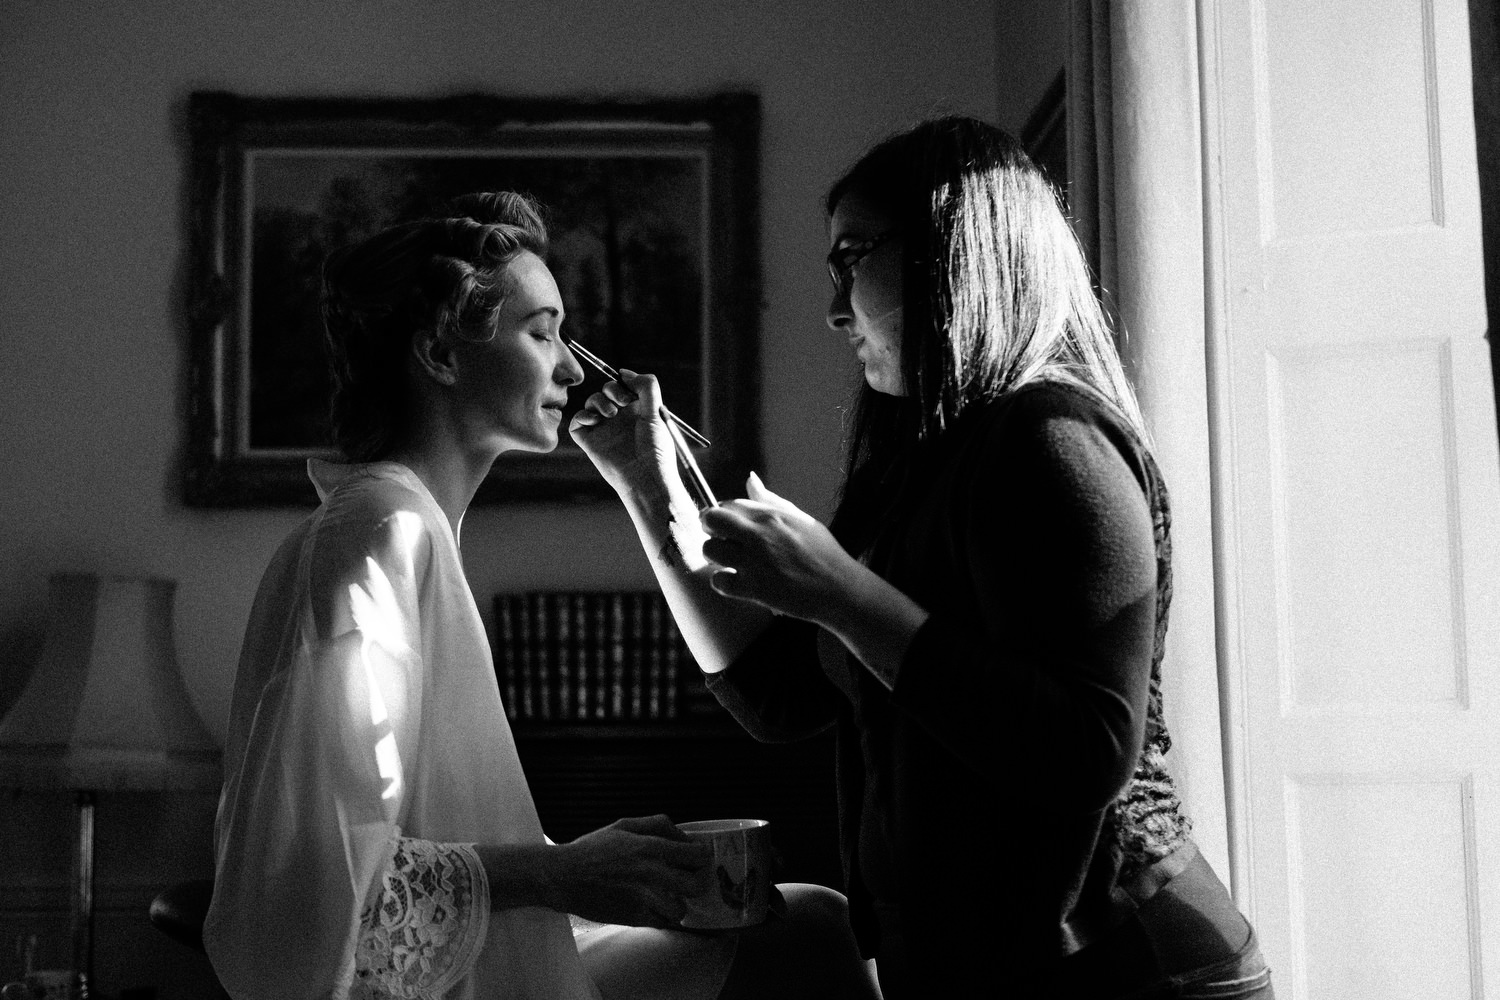 000000000000000000000028_bride_style_preparation_vintage_Hair_dress_photography_david_mcclelland_ireland_makeup_castle_hollywood_kinnity_wedding_photographer_fujifilm